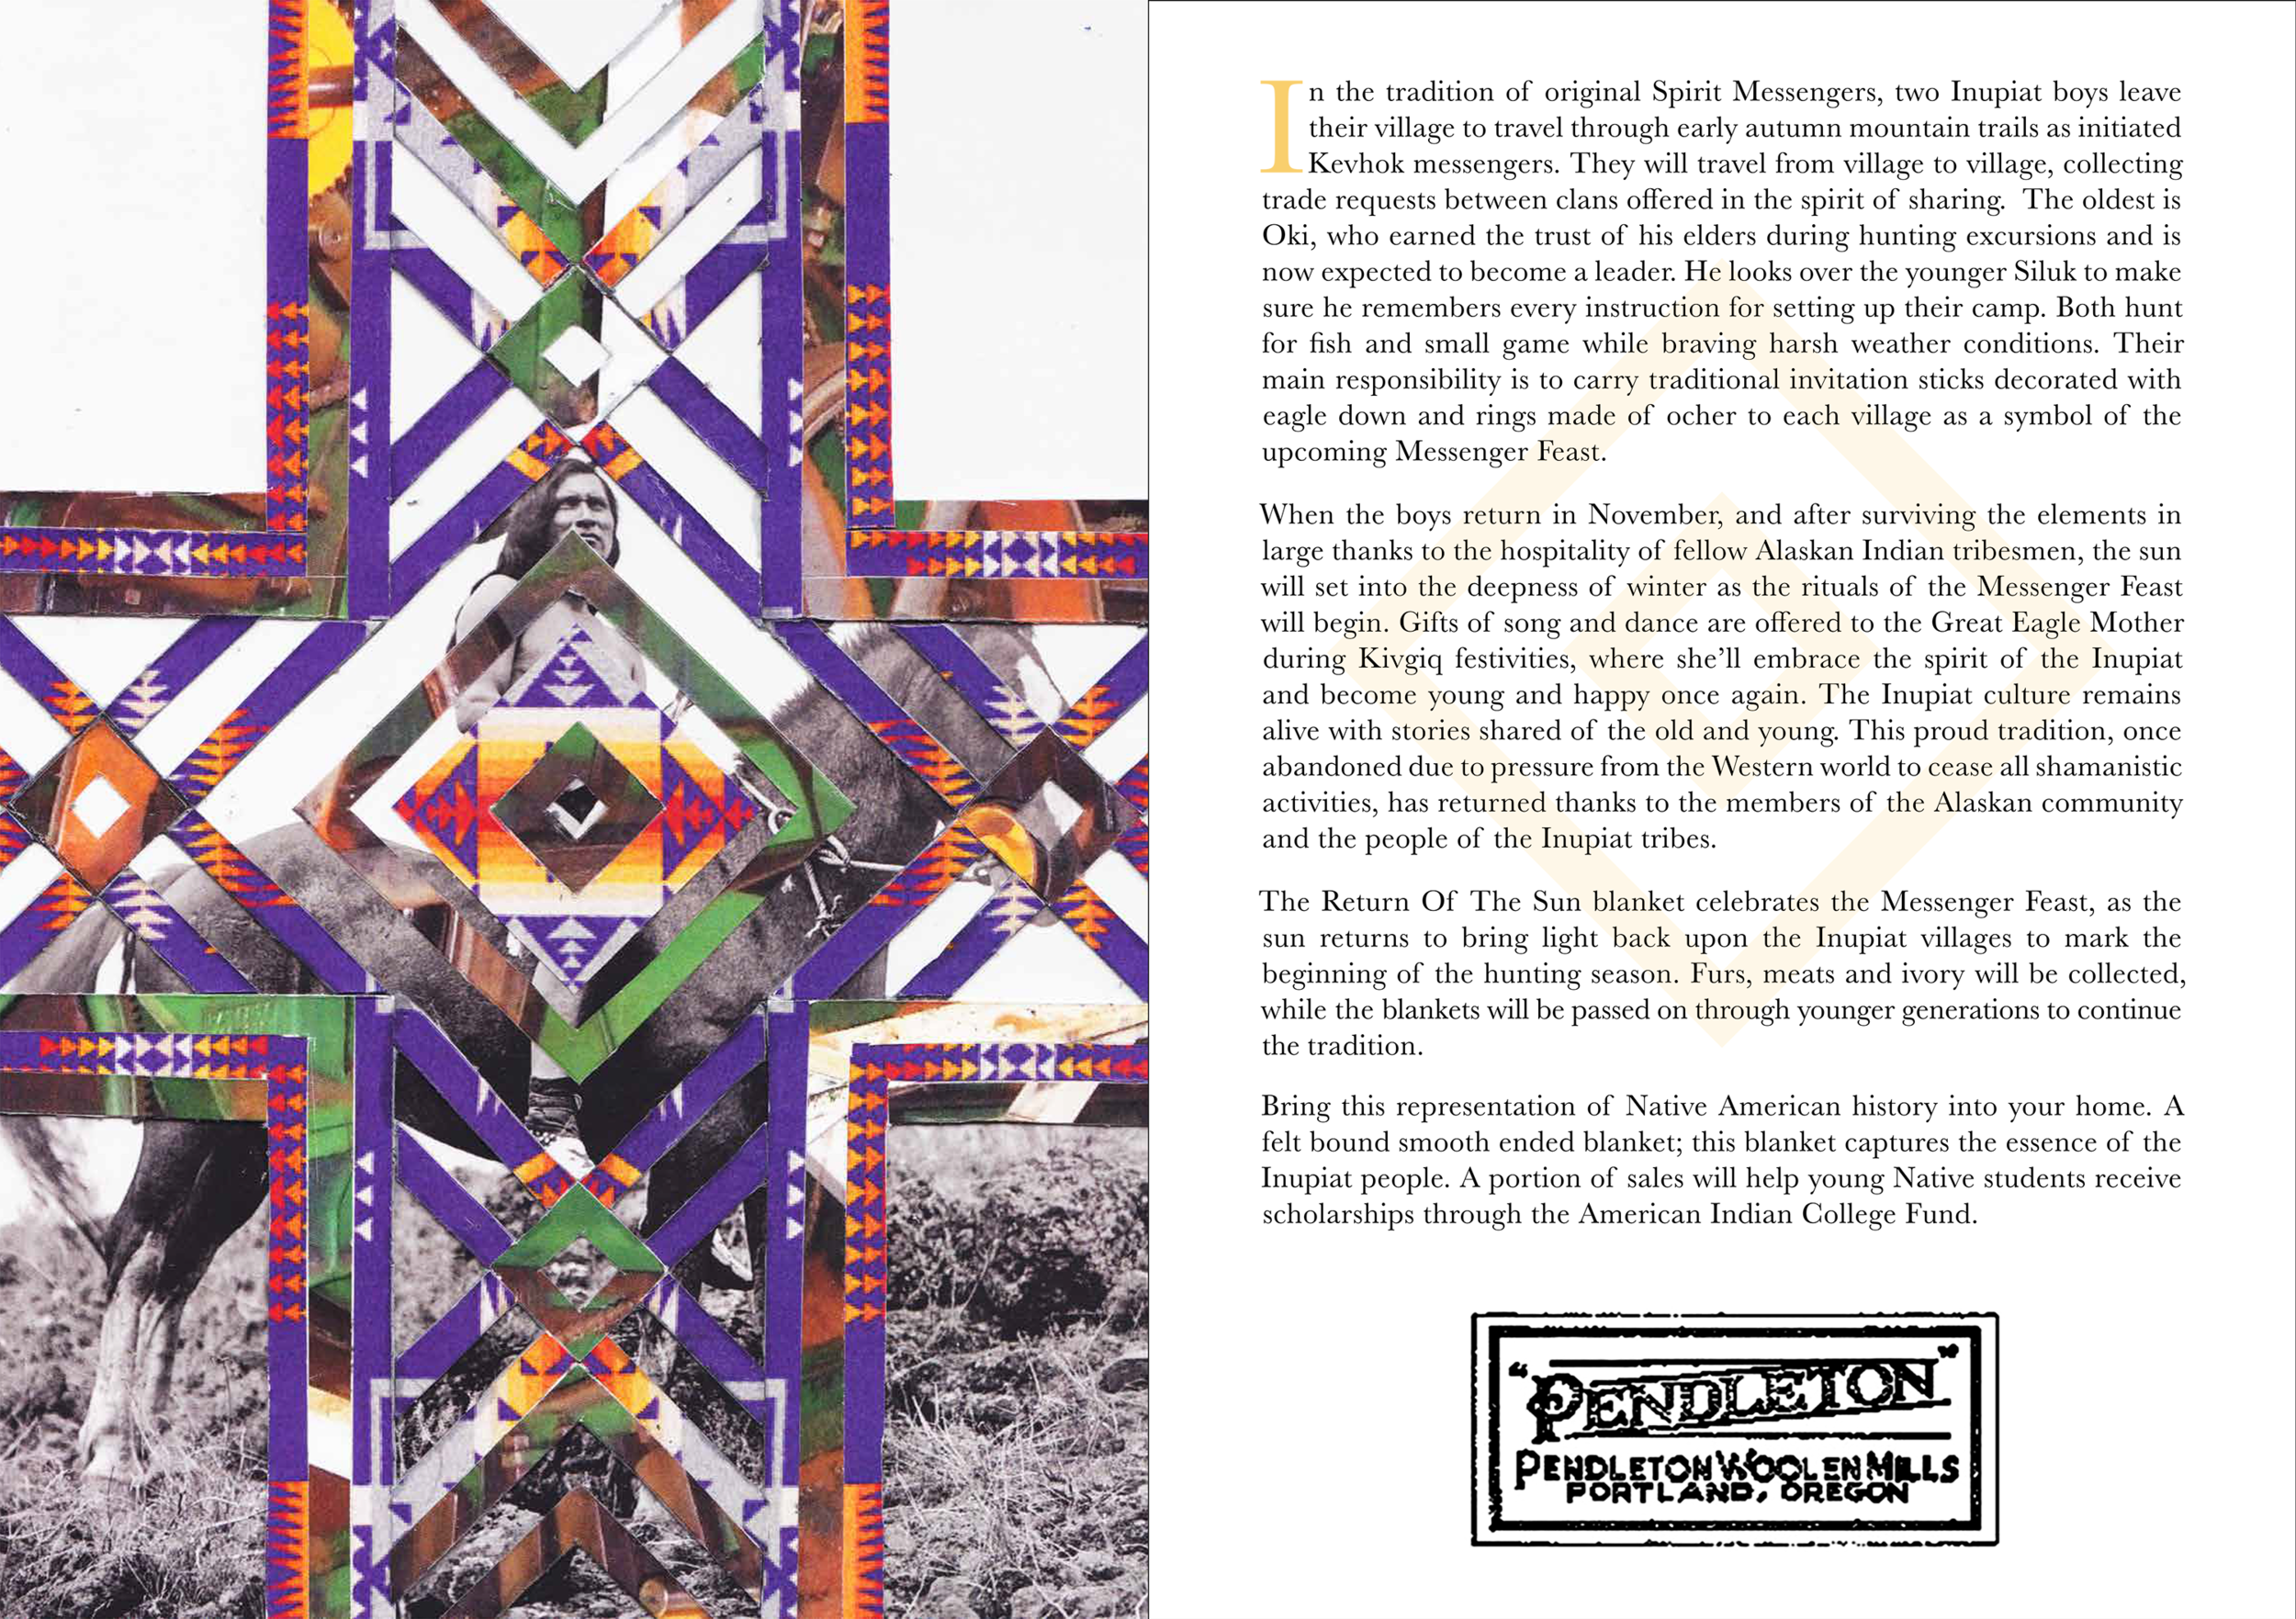 These postcards are placed in every package along with the product. Each postcard/design corresponds to a blanket, and details its history and background.